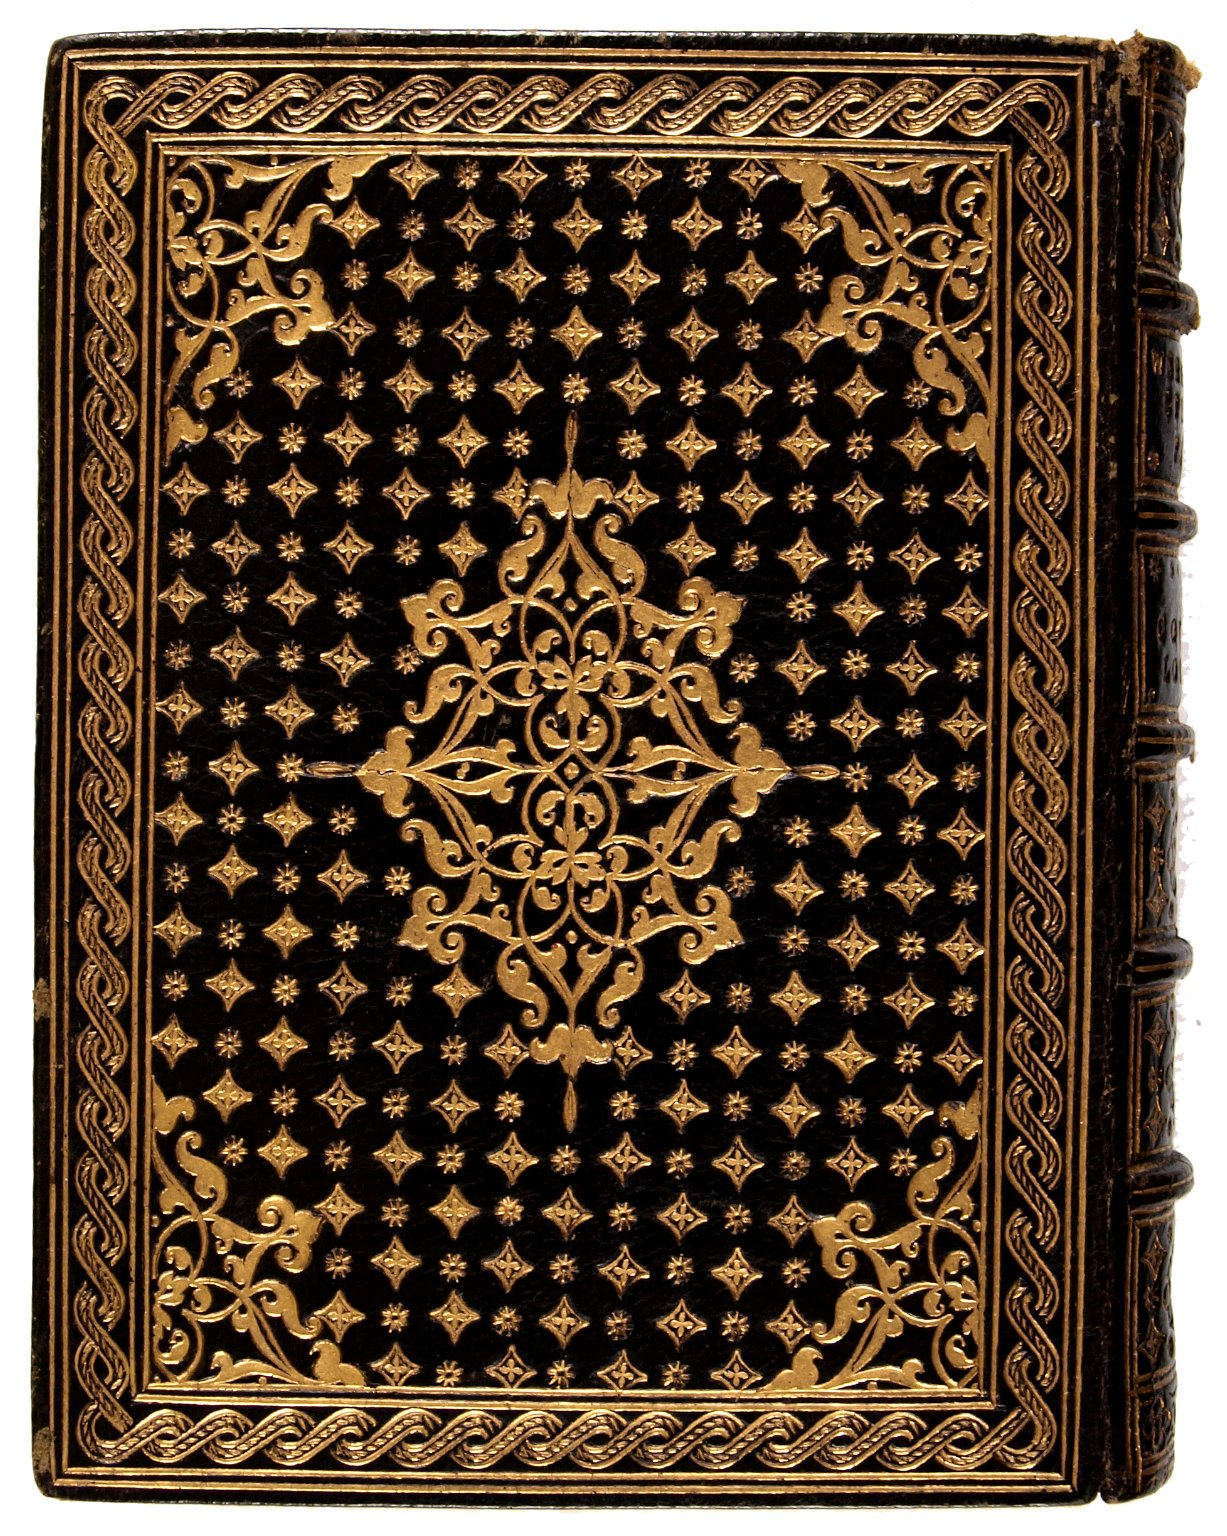 Back cover, STC 25259.